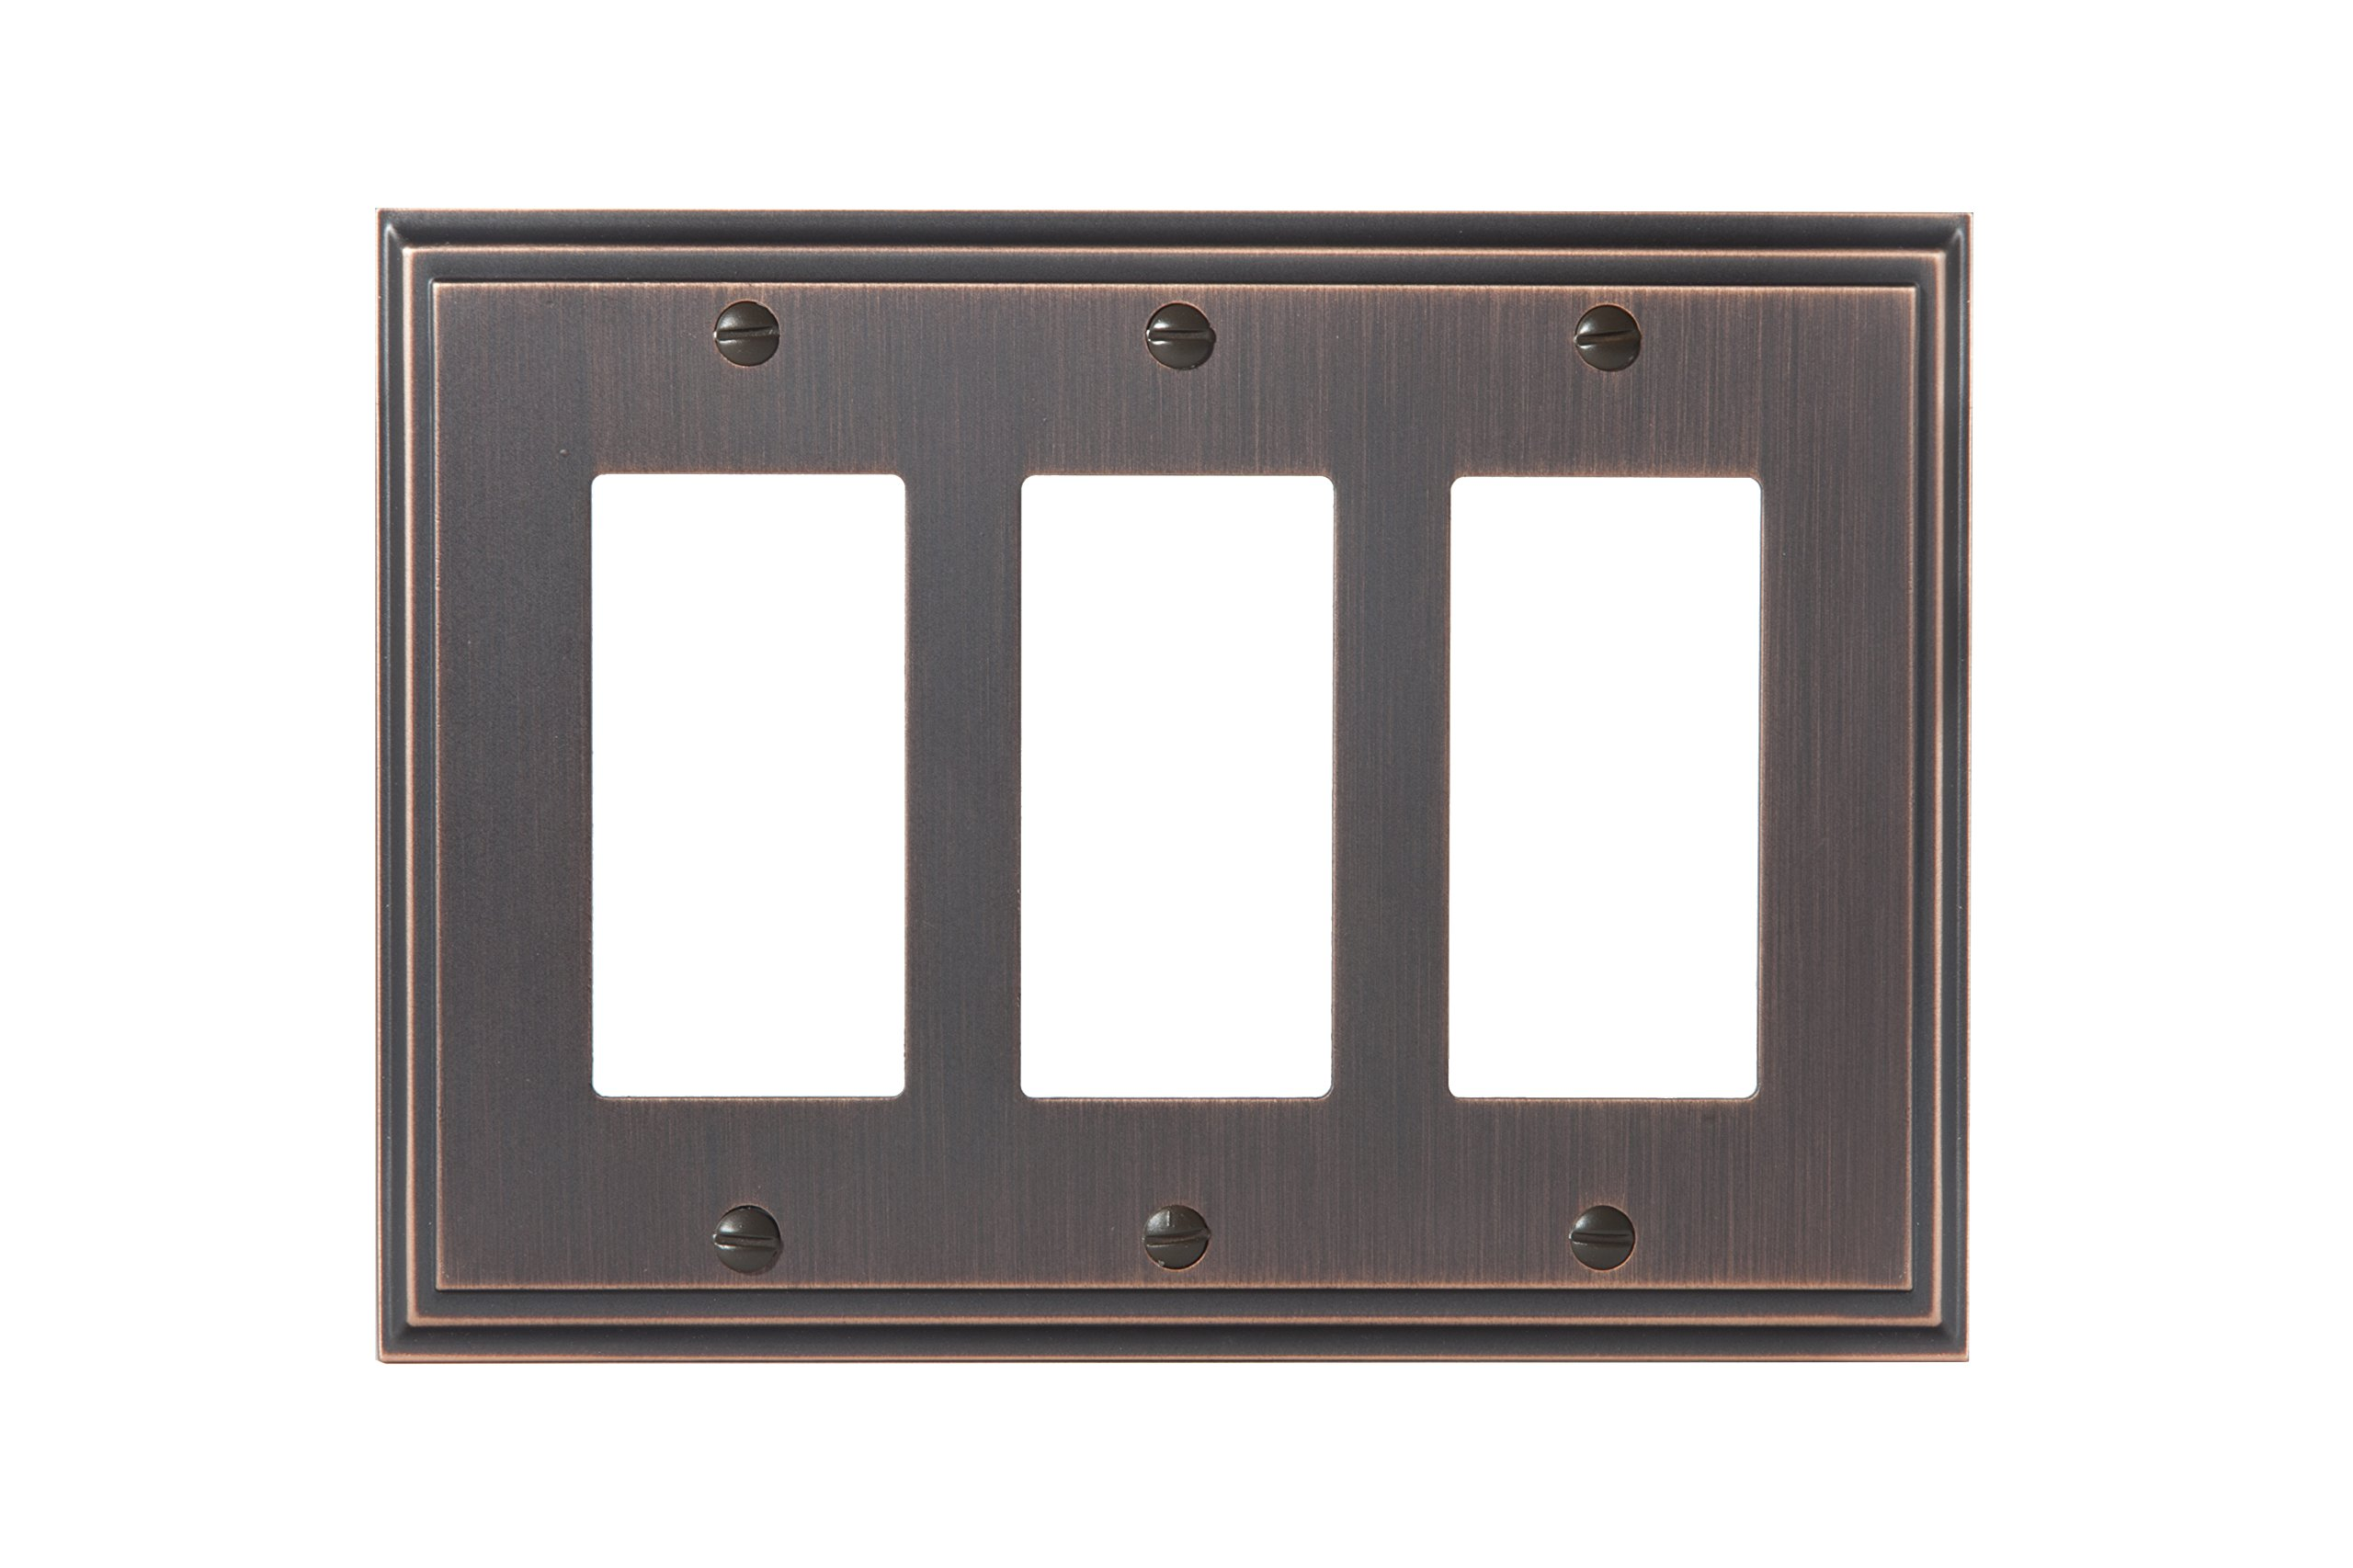 Amerock BP36520ORB Mulholland 3 Rocker Wall Plate - Oil-Rubbed Bronze by Amerock